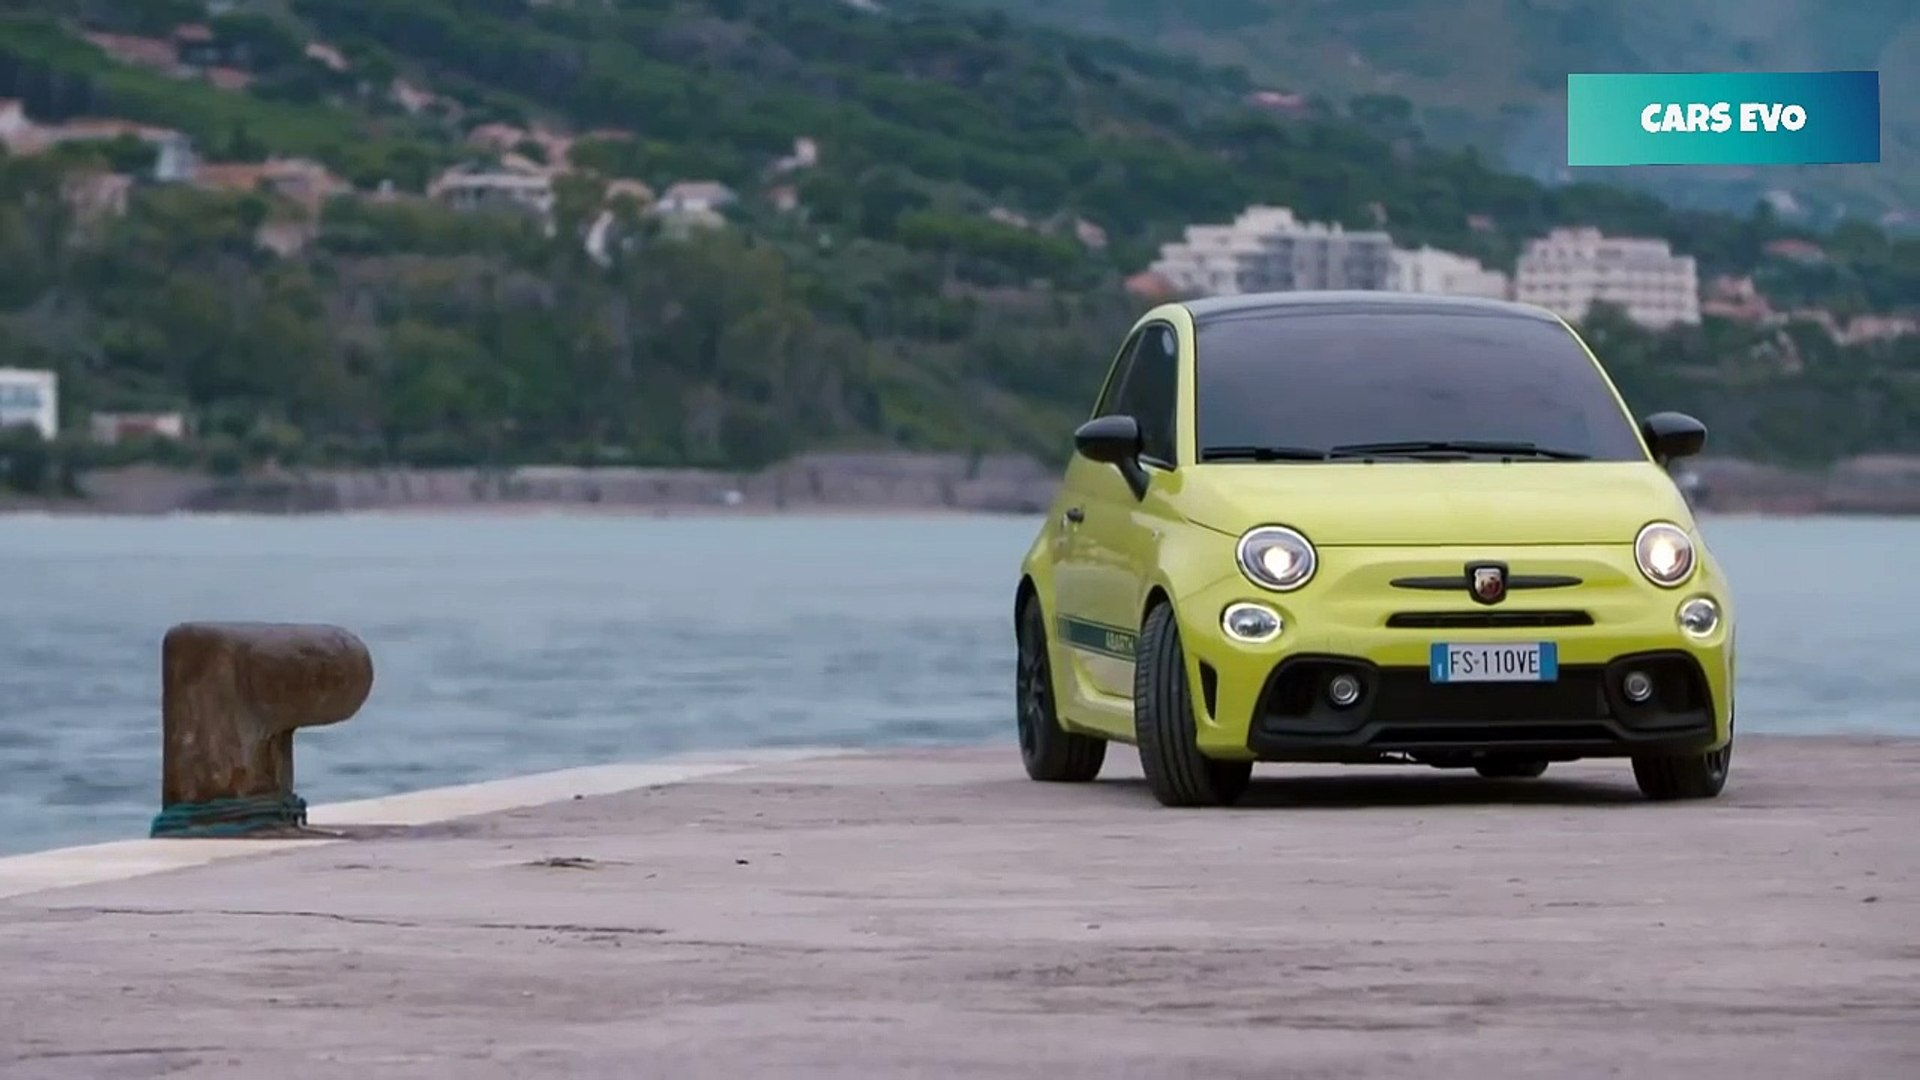 2018 Abarth 595 Competizione - Performance and Style